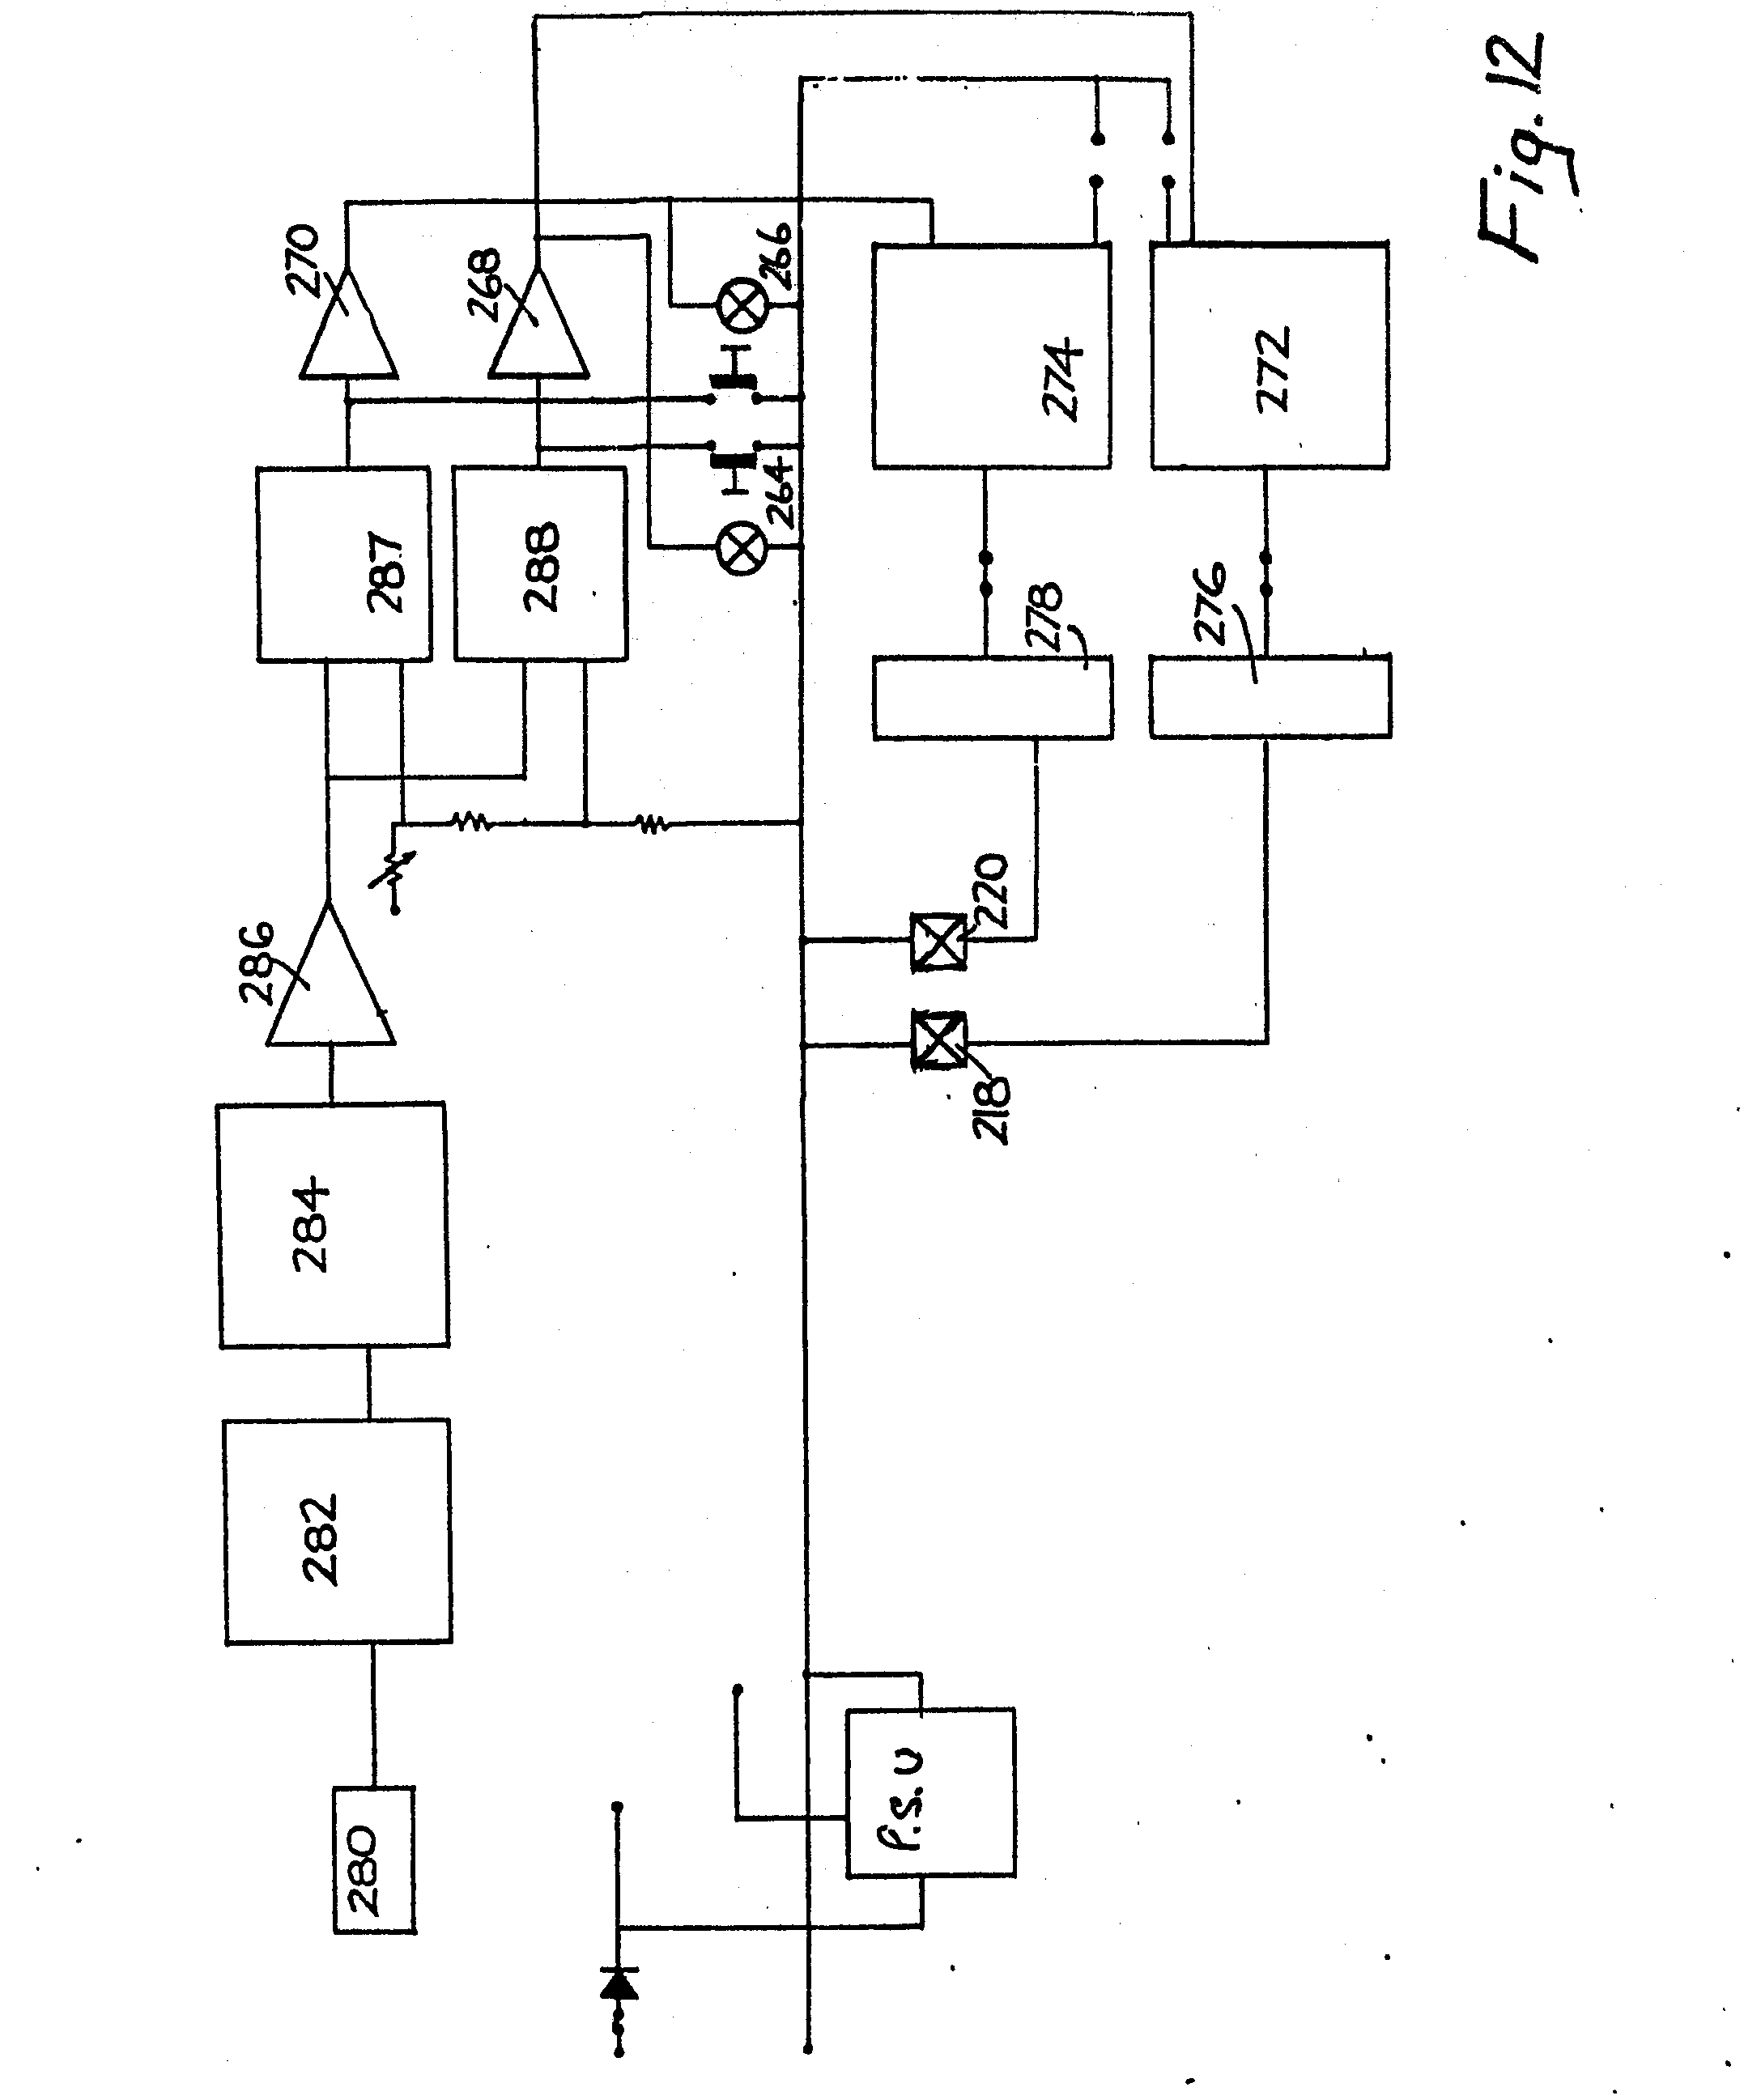 imgf0011 patent ep0137577a1 a stair lift google patents stannah 260 wiring diagram at fashall.co